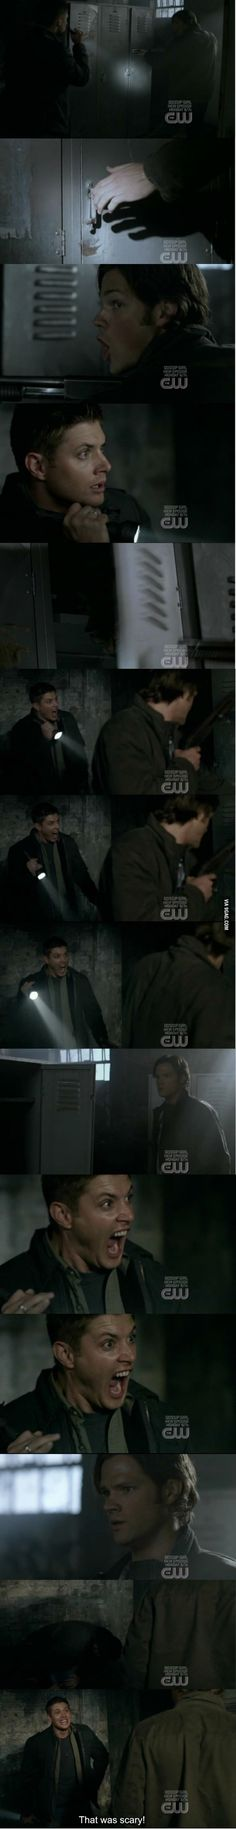 This was hilarious! One if my favorite episodes...